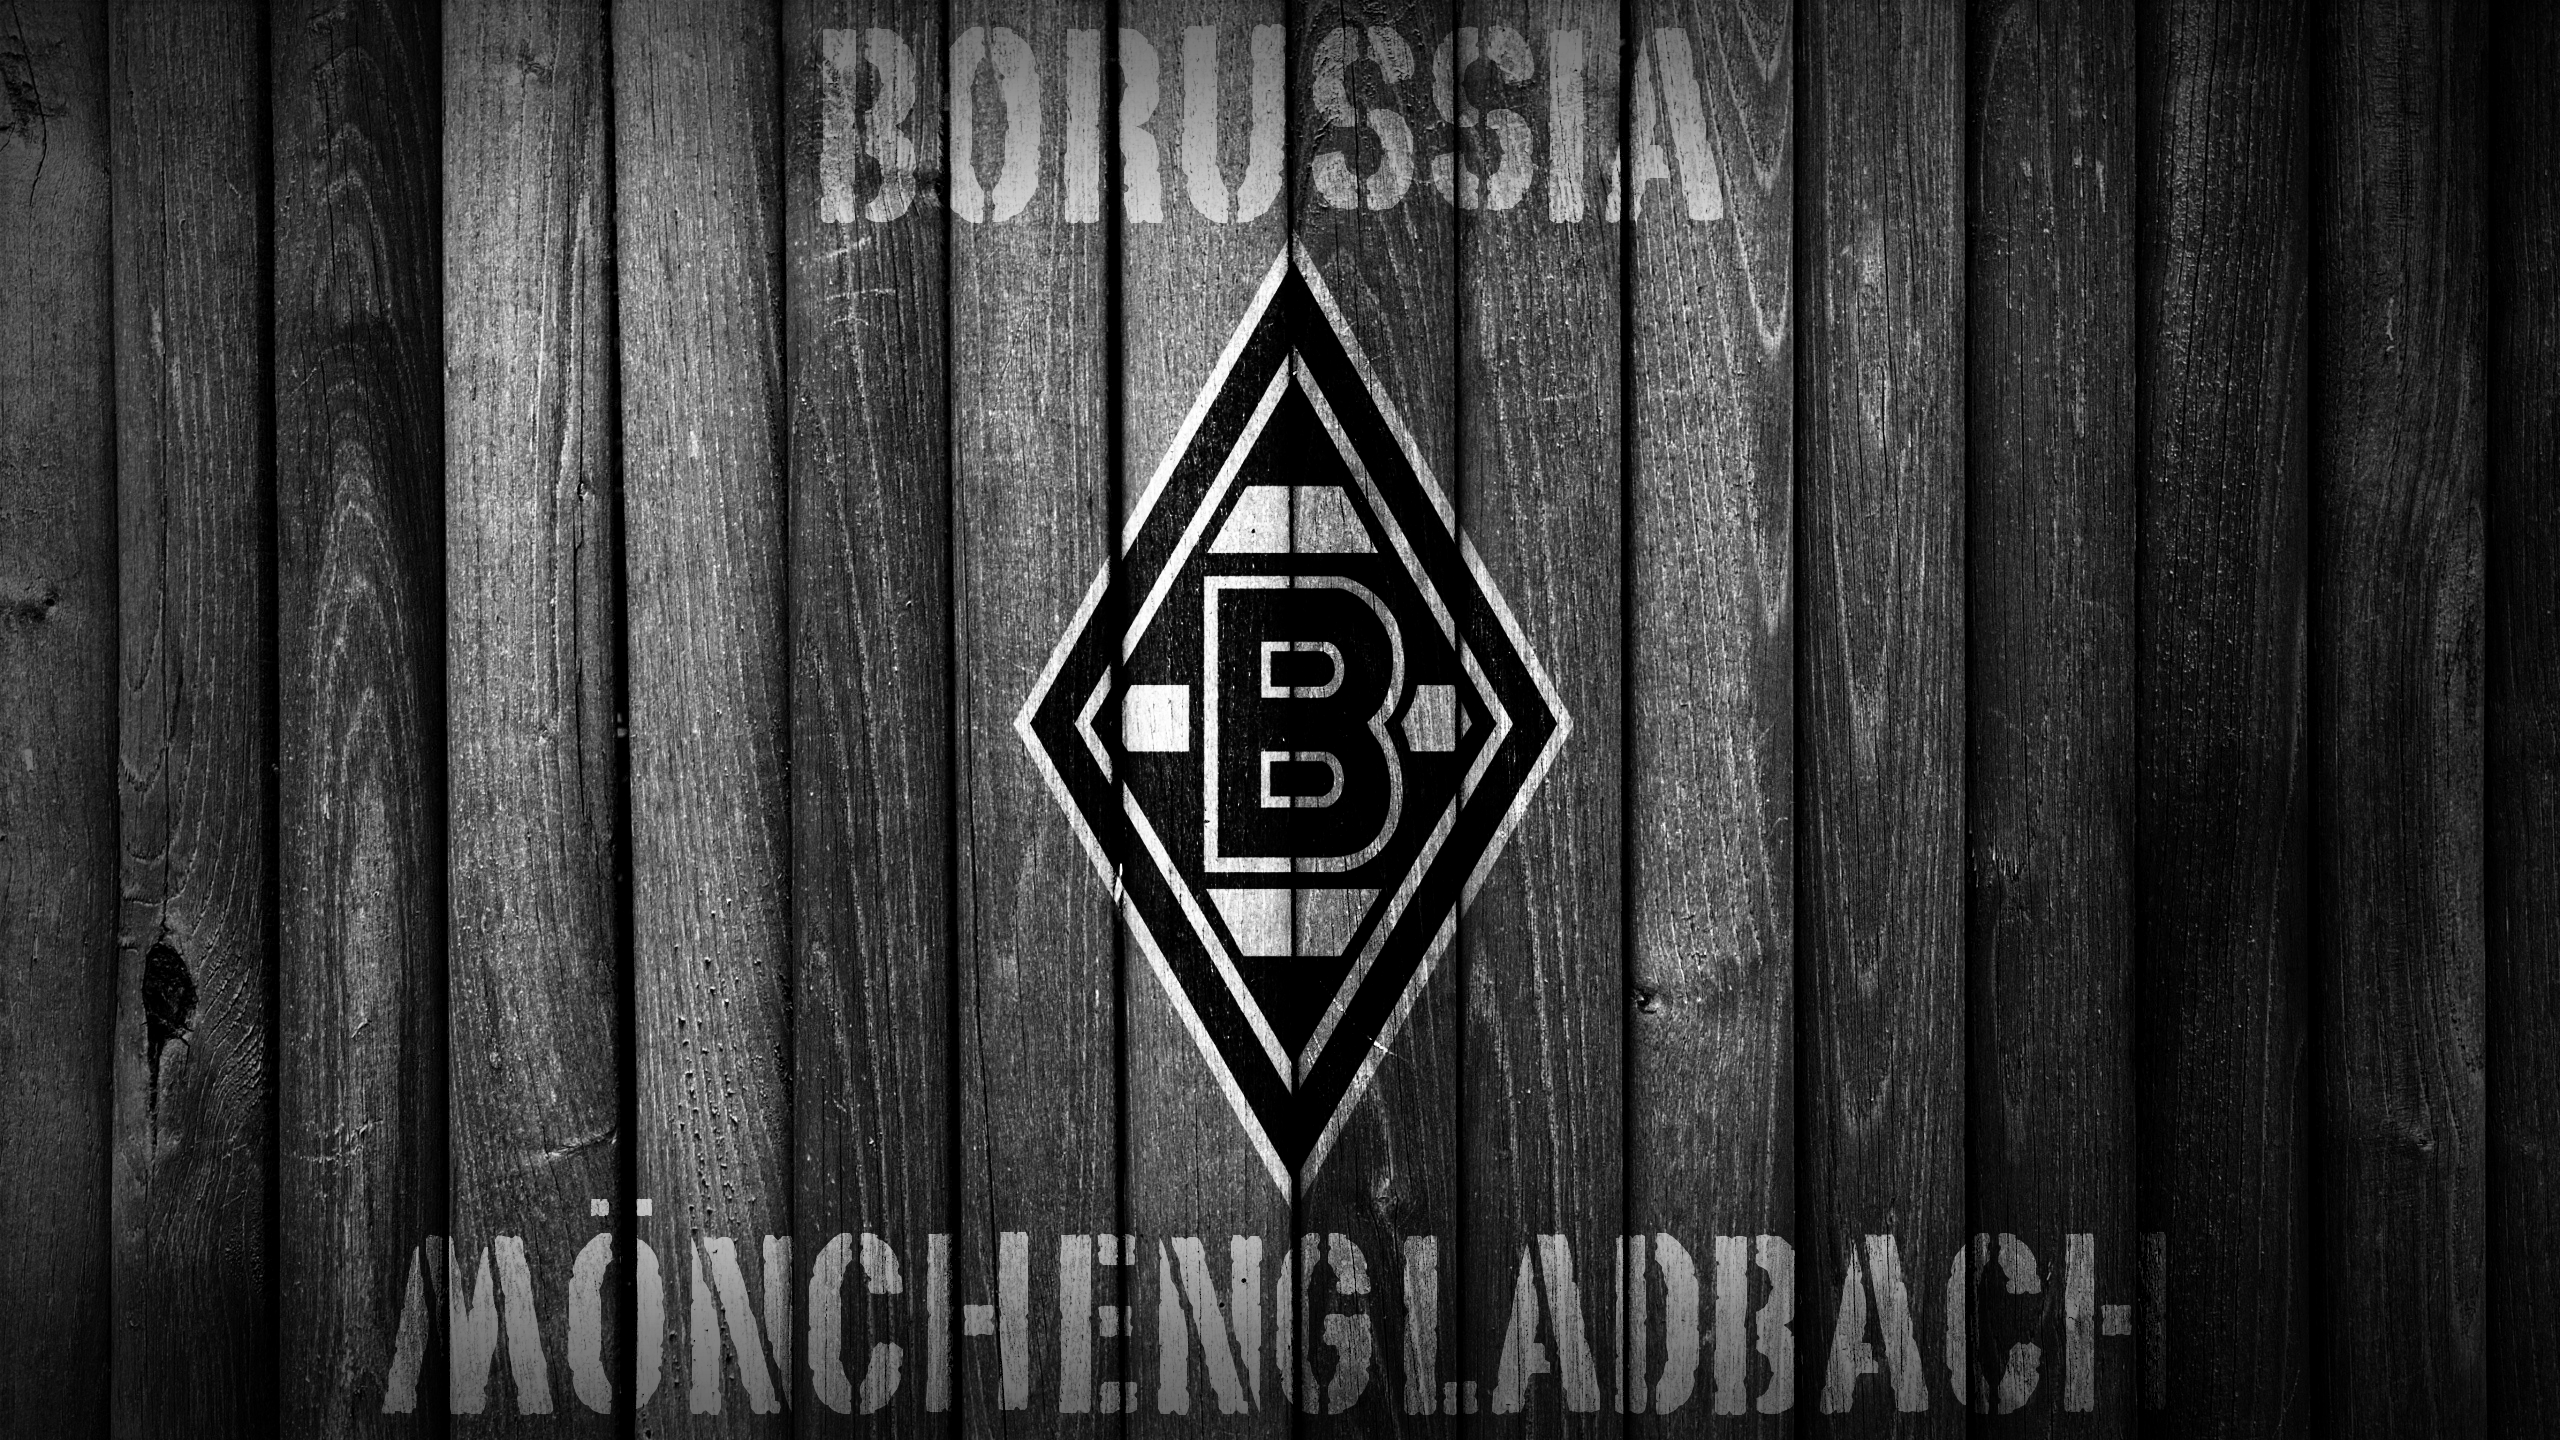 Download Borussia Mönchengladbach App Für Android